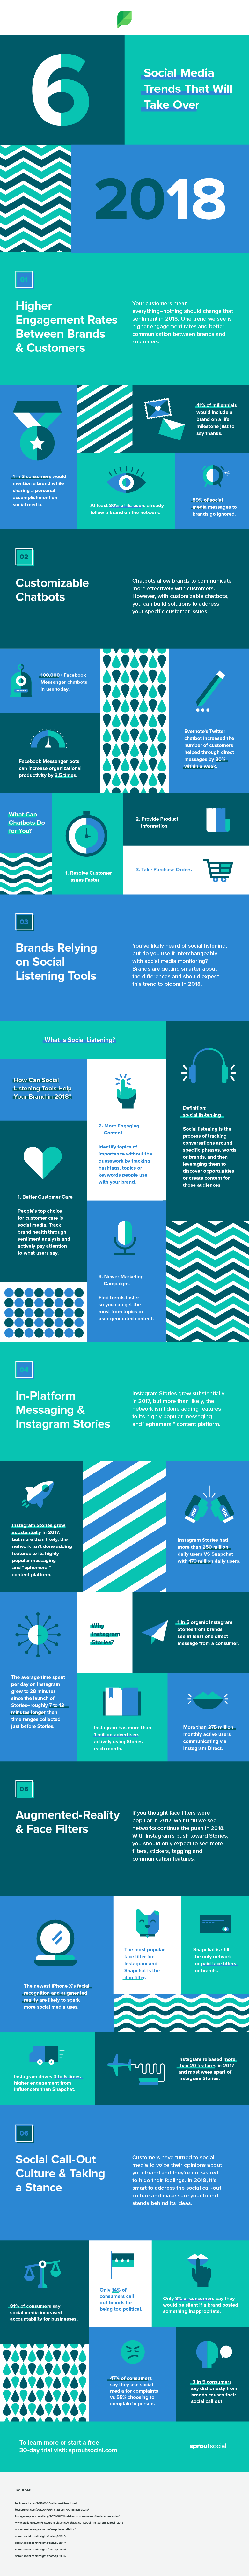 Social Media Trends 2018 Infographic